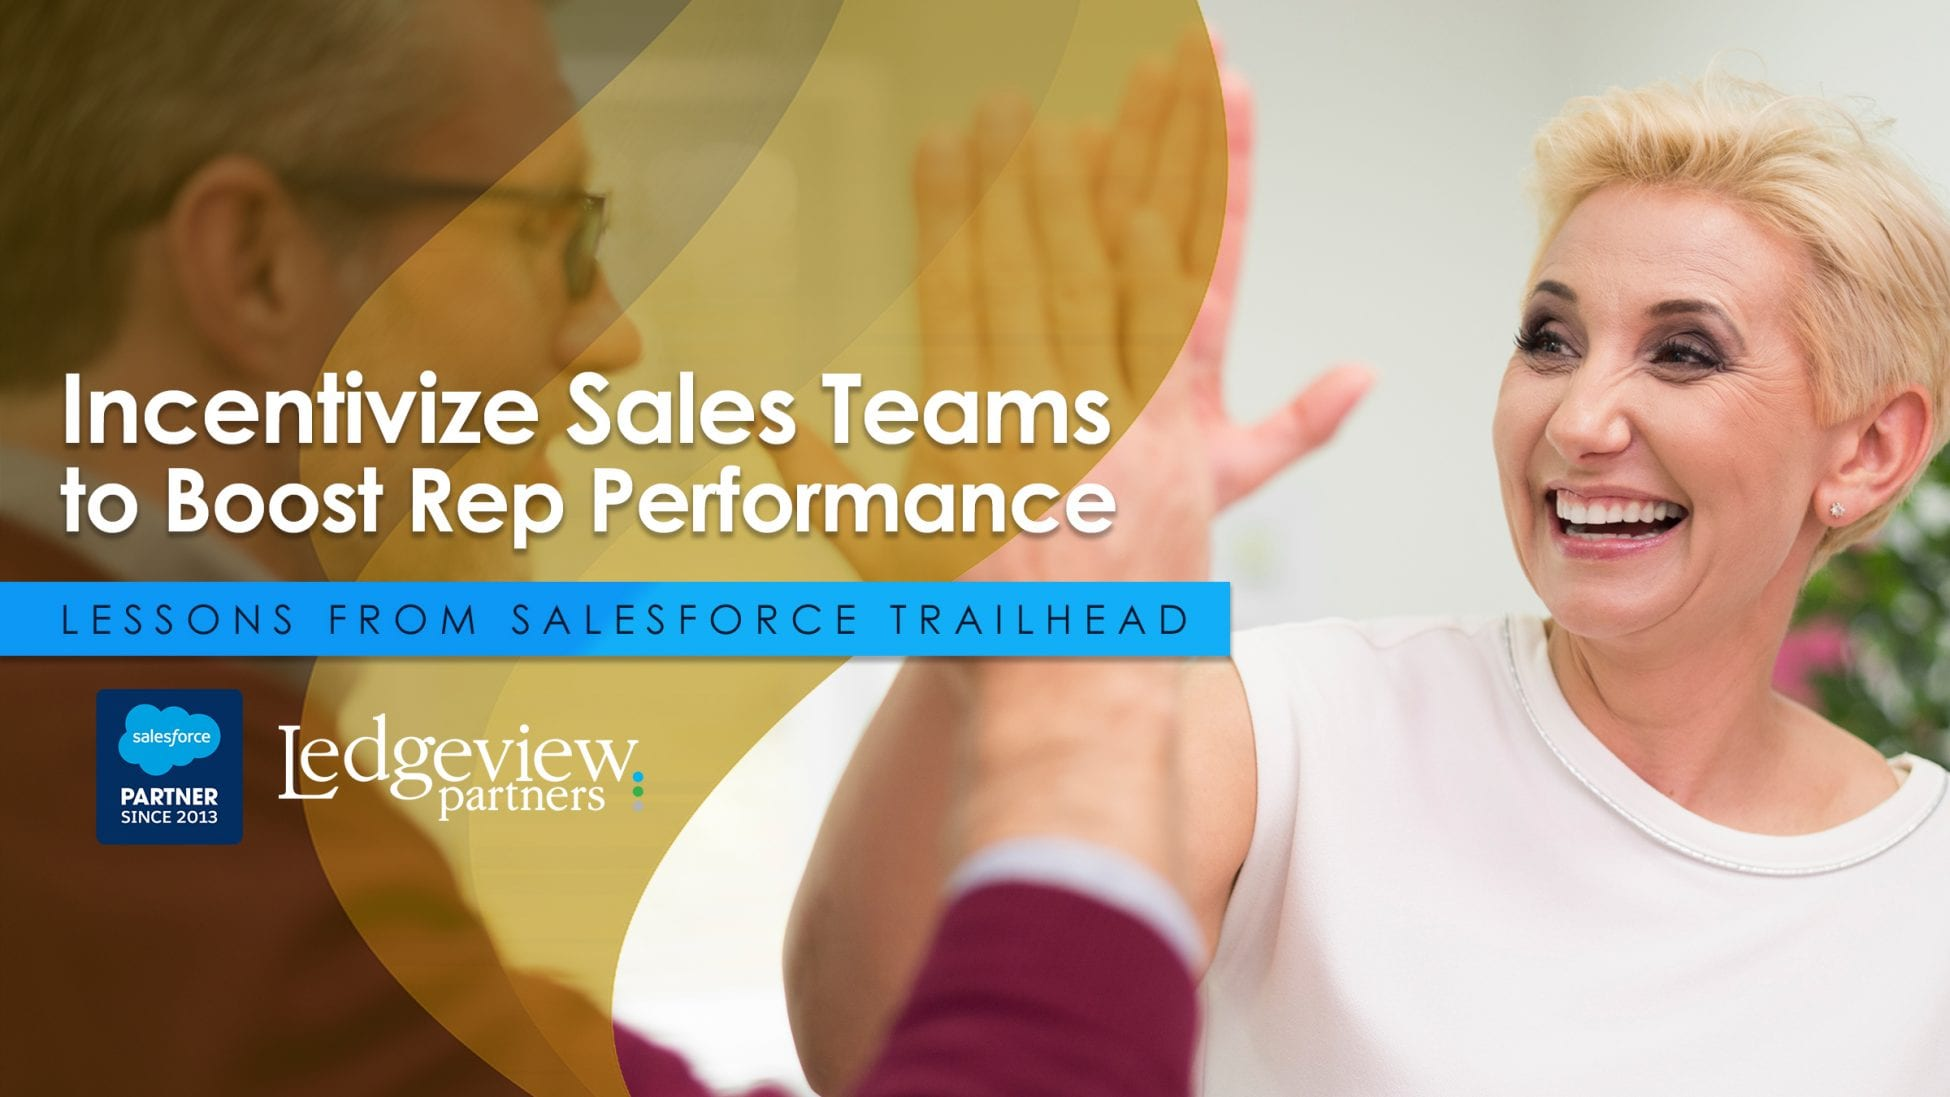 Incentivize Sales Teams to Boost Rep Performance